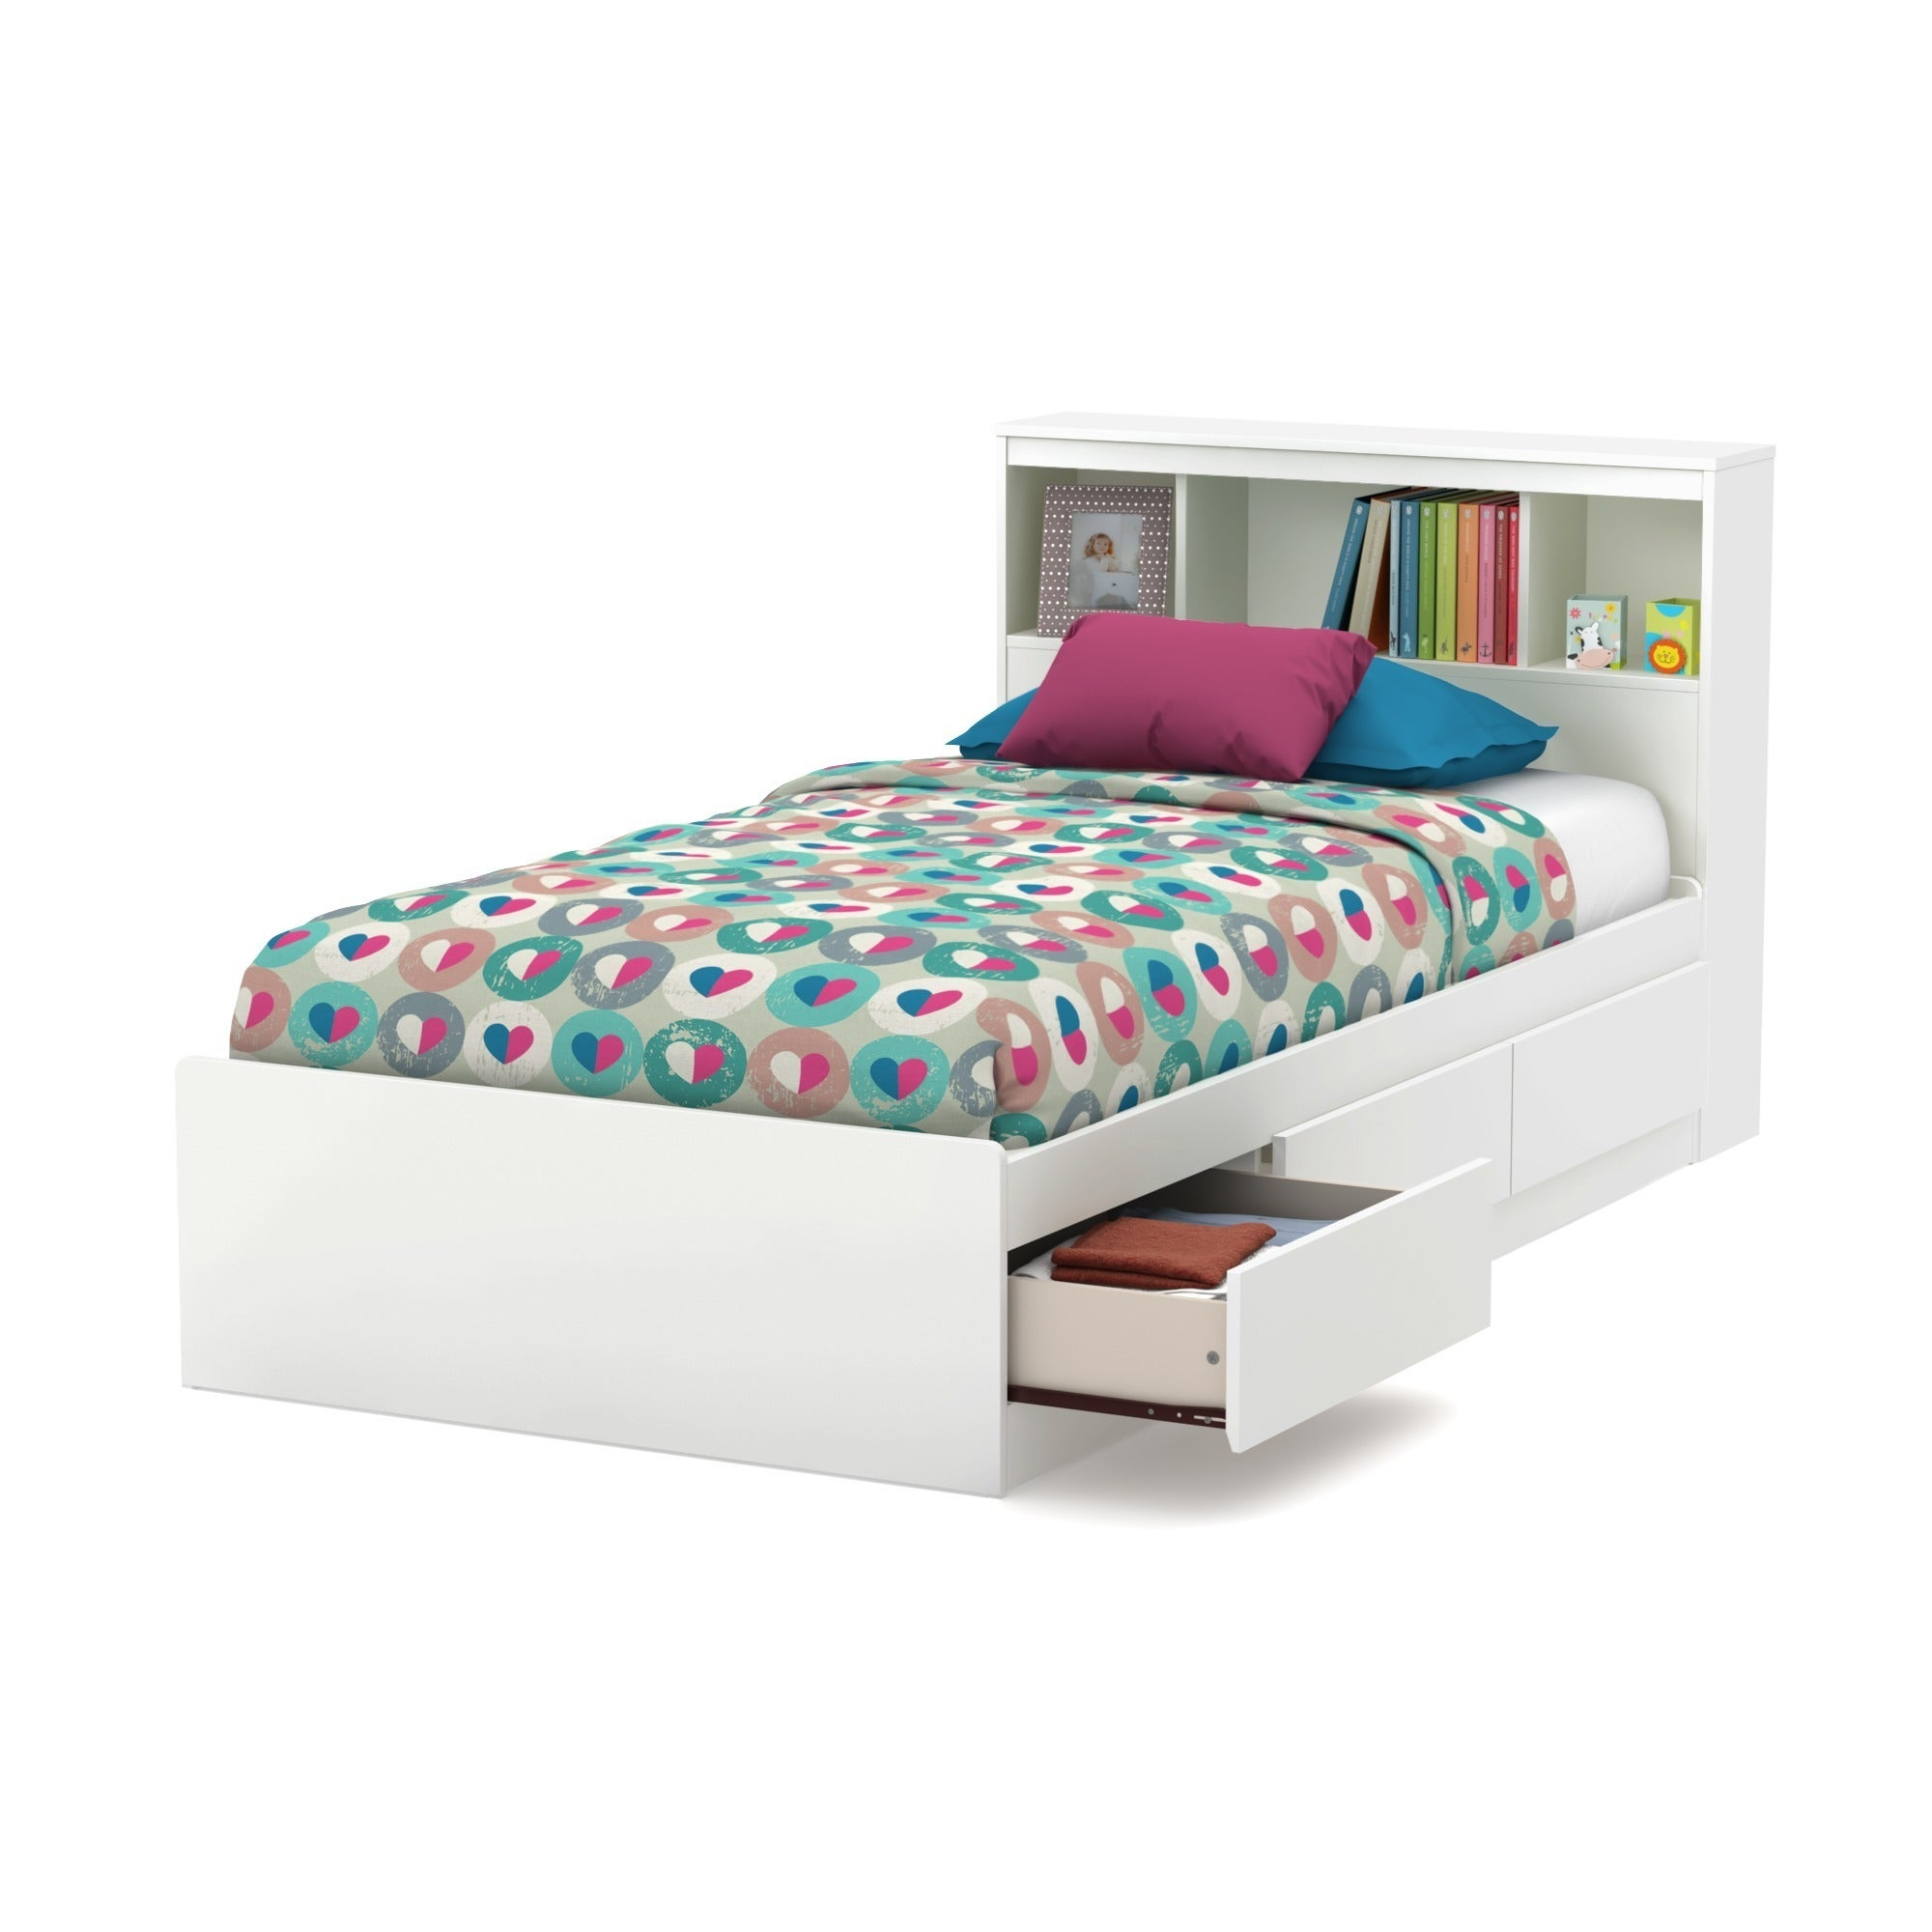 honey bed the favorite or nacks berg day size lang books yourself your of full trundle queen bayfield surround with captains nick twin bookcase merlot headboard